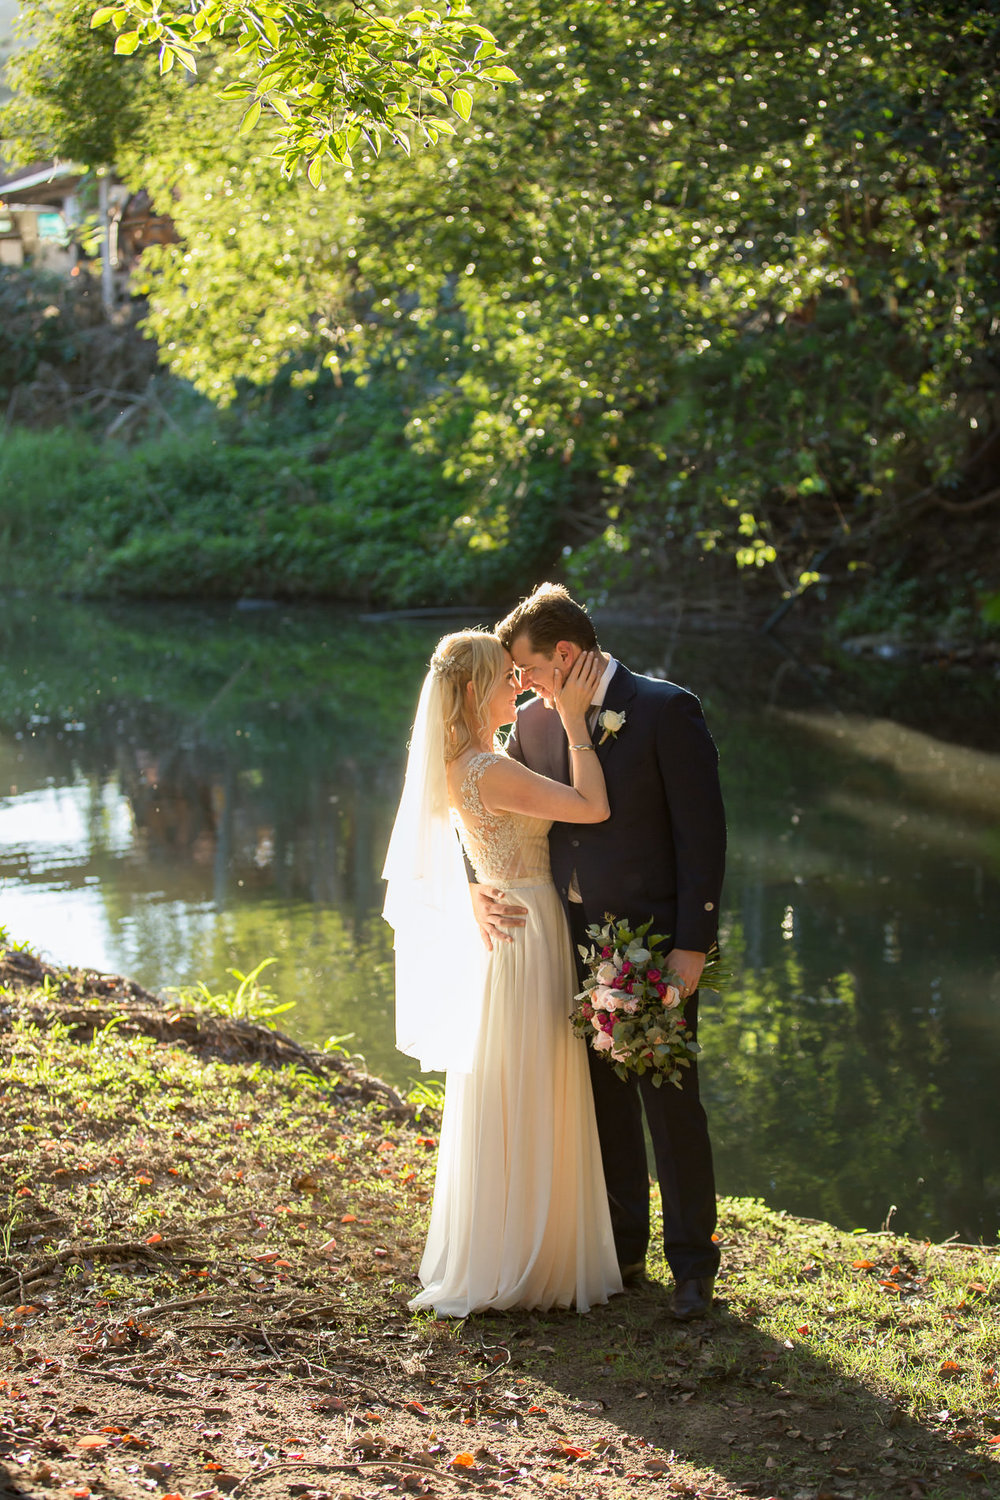 True North Photography_Boomerang Farm_Stacey and Isaac_Gold Coast Wedding_Barm Wedding_Hinterland Wedding-143.jpg